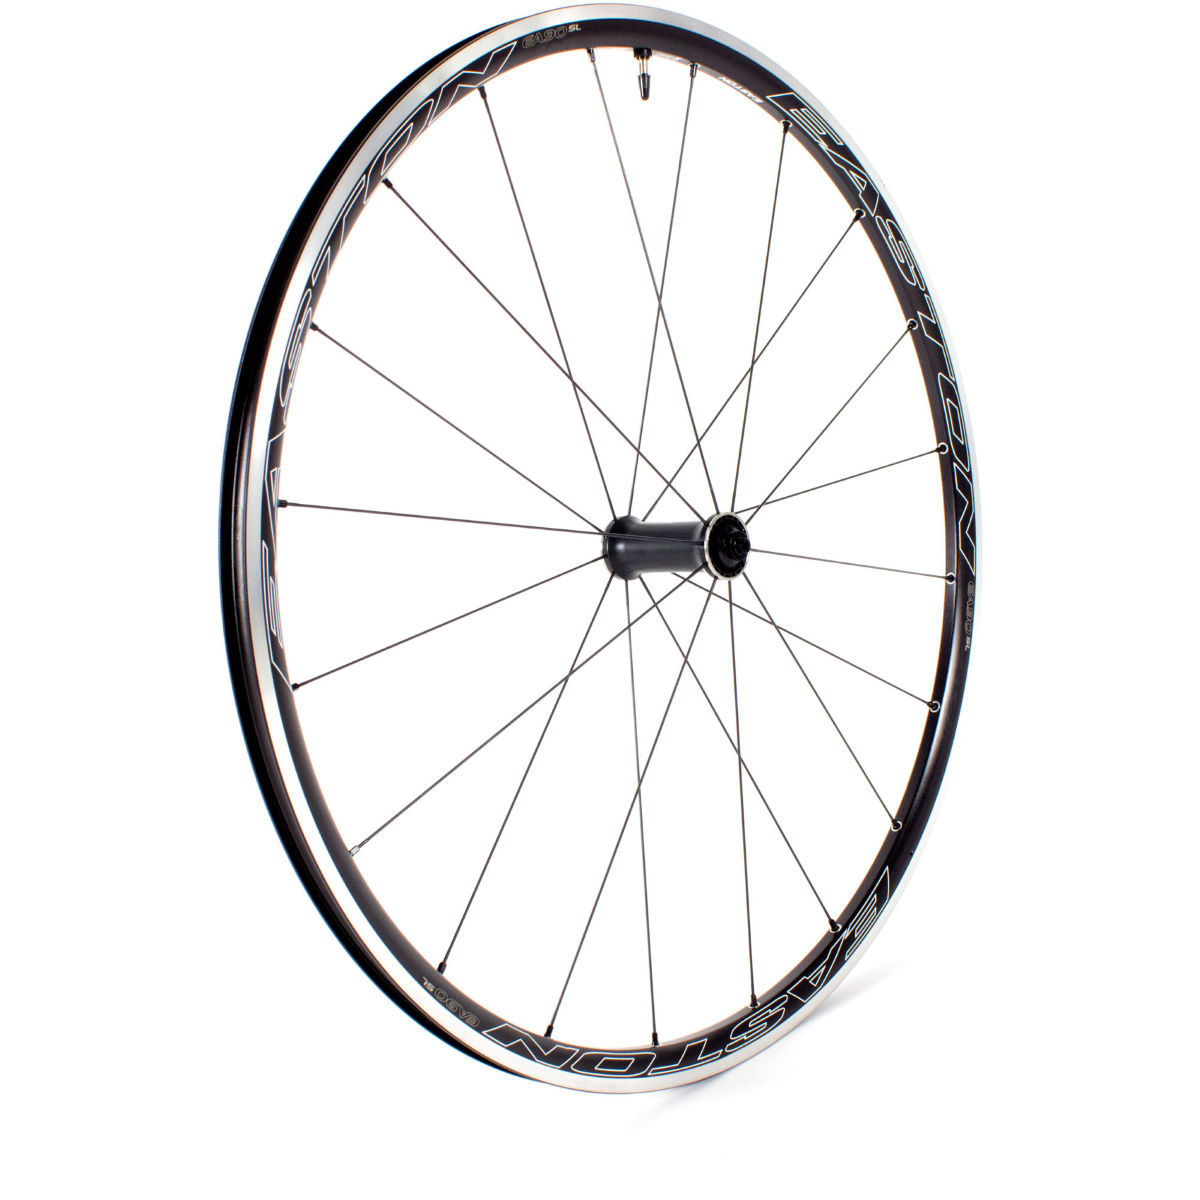 Roue avant Easton EA 90 SL Tubeless (alliage, route) - 700c Noir Roues performance